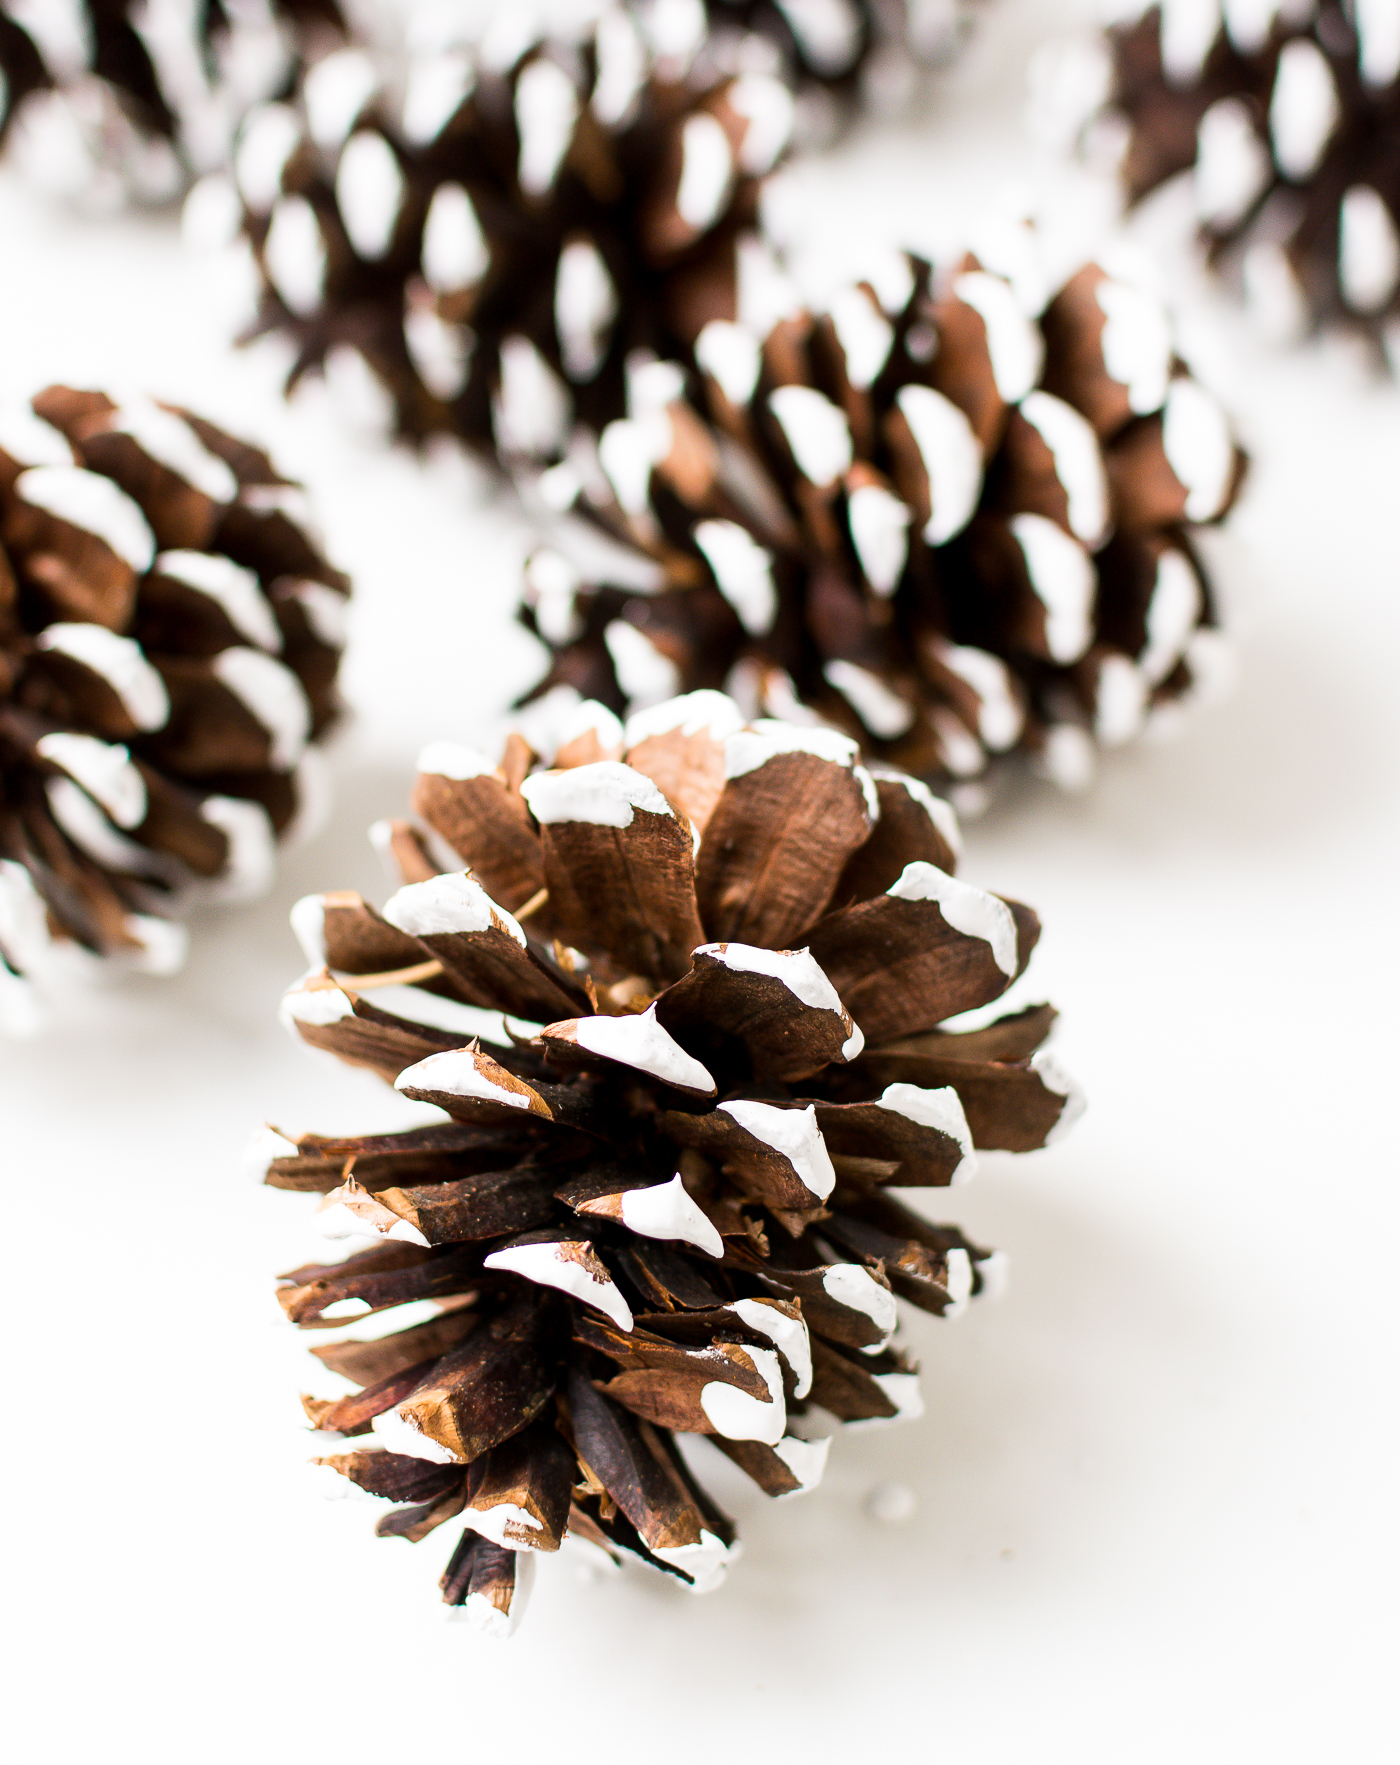 painted-pine-cones-how-to-paint-itallstartedwithpaint-com-6